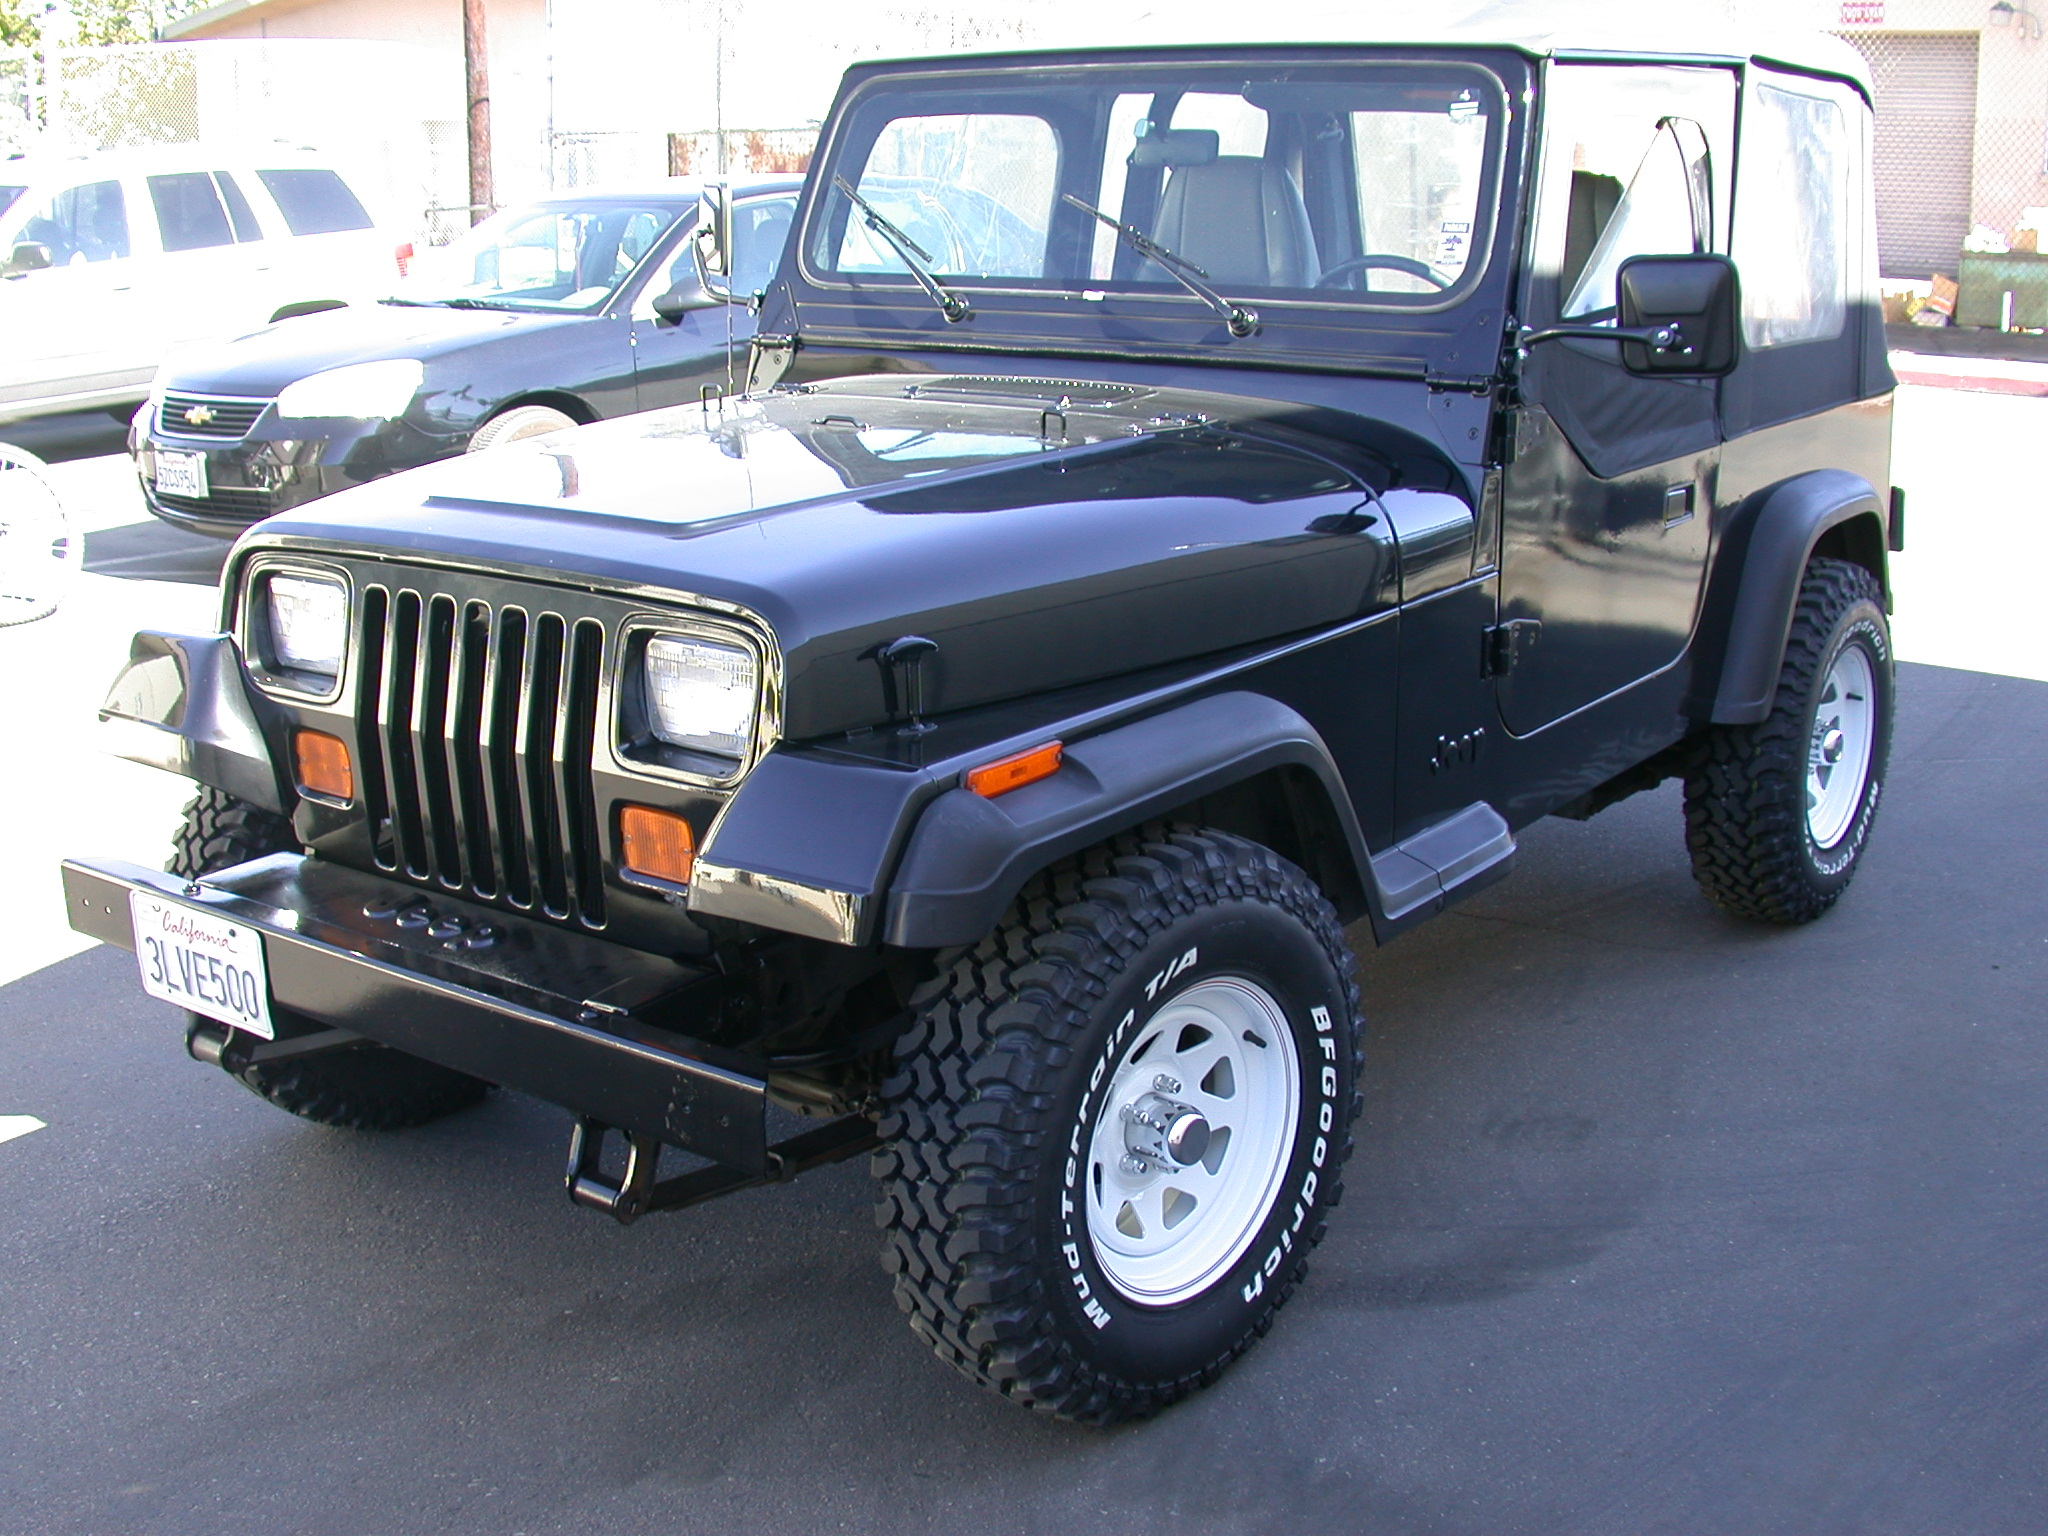 file:1995 jeep wrangler yj (front left) - wikimedia commons